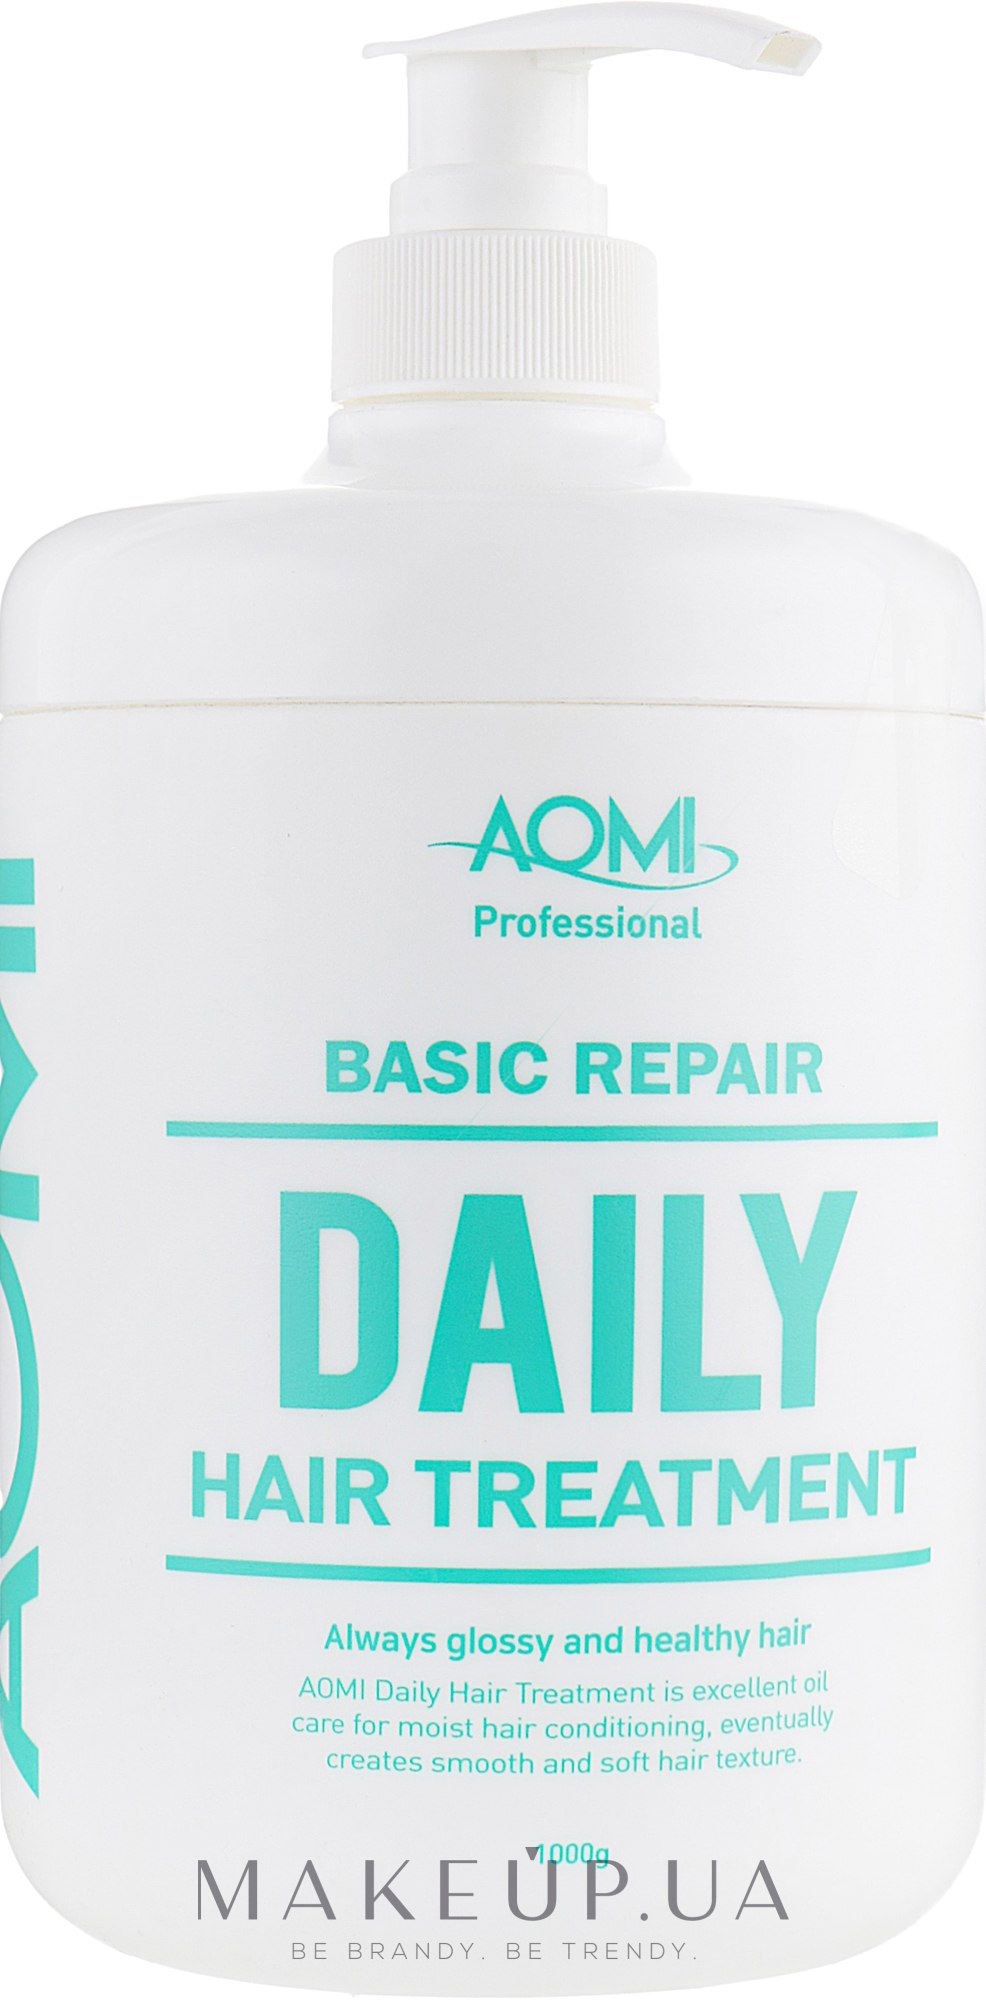 Маска для волос с экстрактом зеленого чая и алоэ вера - AOMI Basic Repair Daily Treatment — фото 1000ml